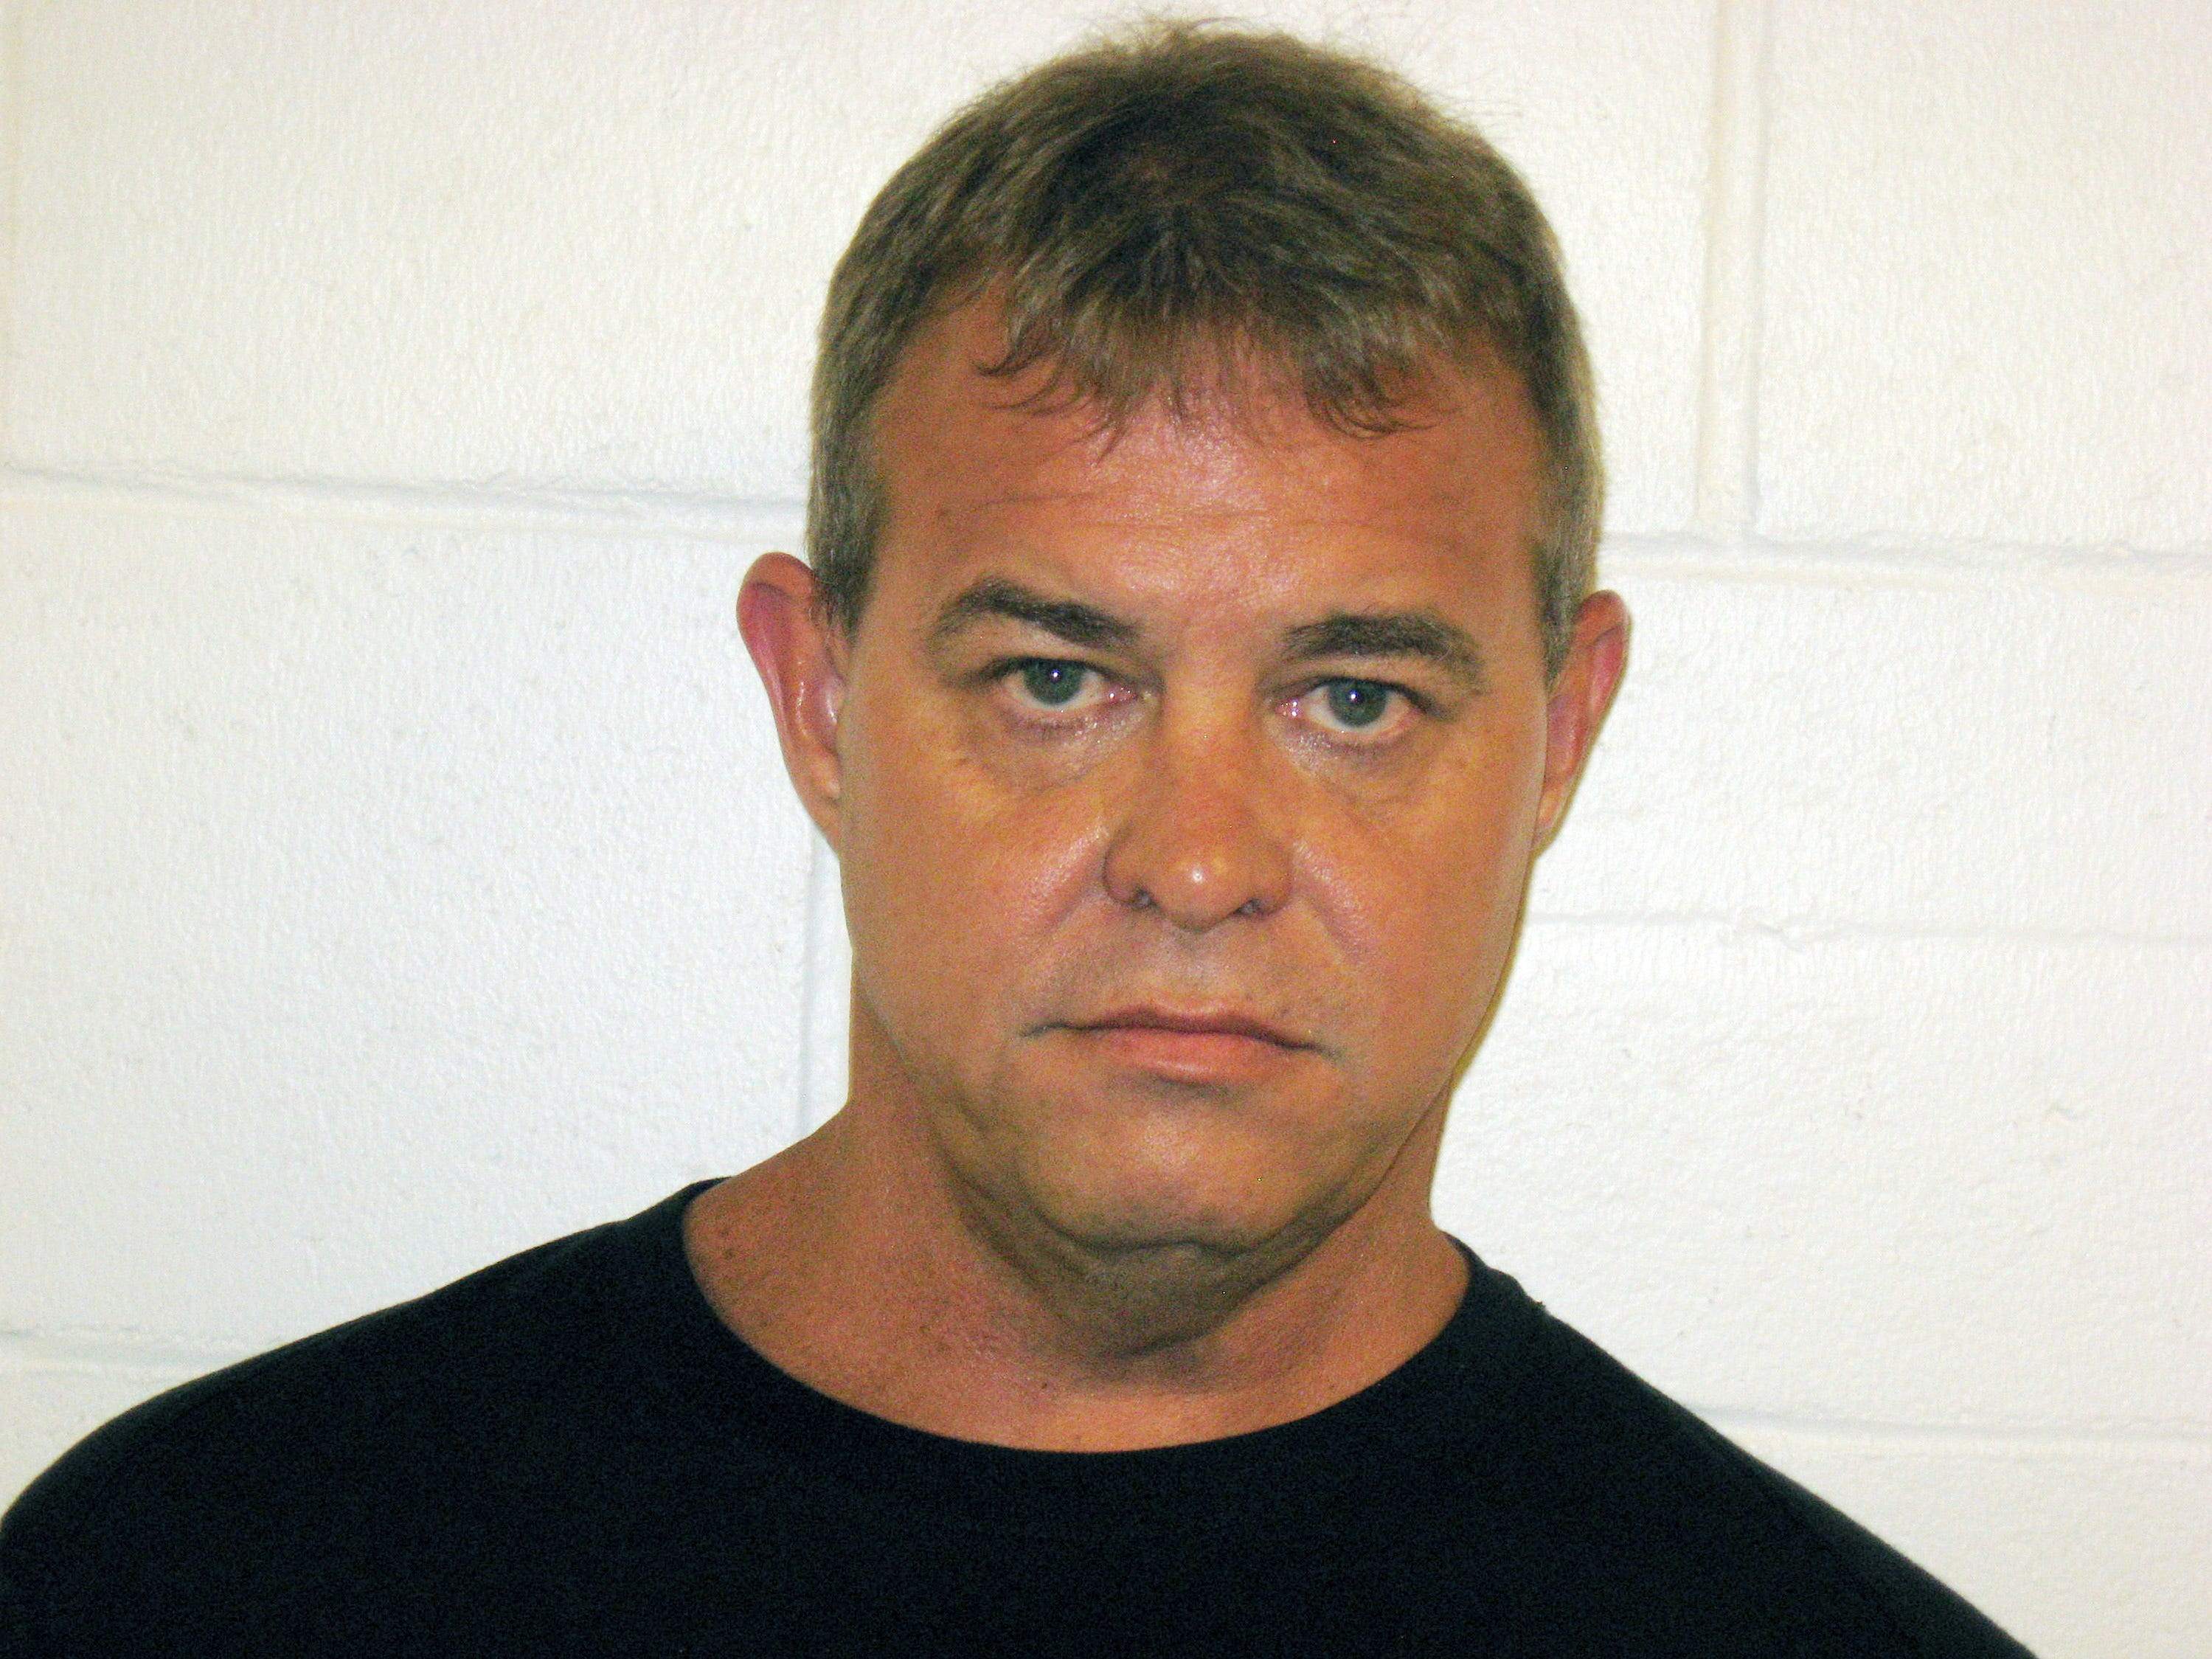 This undated file photo provided by the Churchill County Sheriff's office shows John O'Conner. The Nevada man accused of fatally shooting a fellow member of his Mormon congregation during Sunday services made his first court appearance Wednesday, July 25, 2018, after being indicted on murder, battery and assault charges.